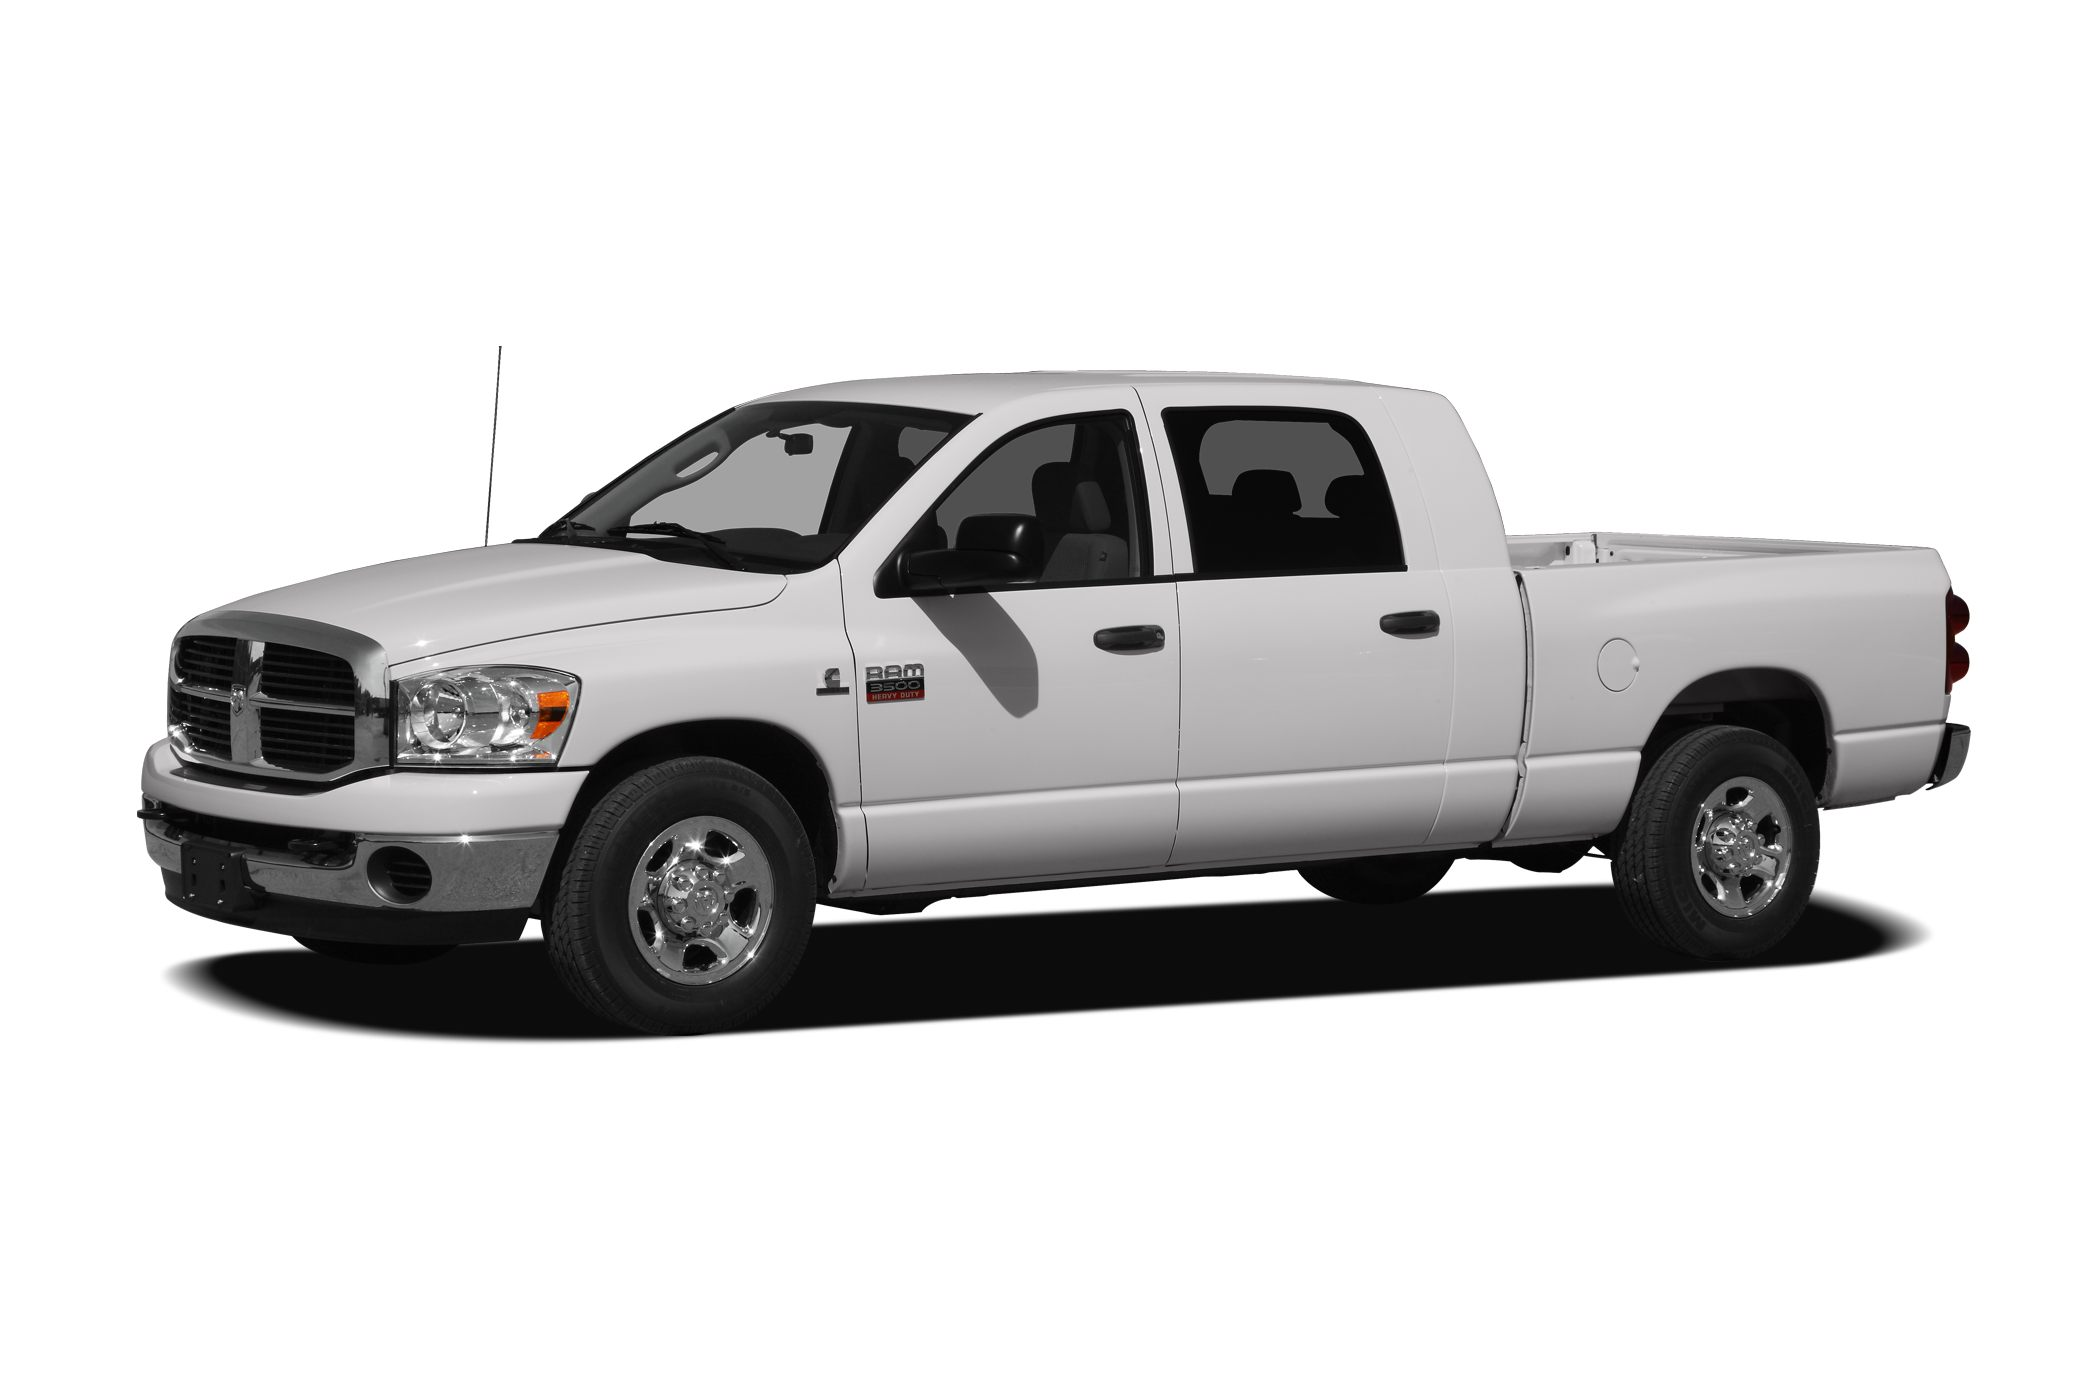 2008 Dodge Ram 3500 SLT Ram 3500 SLT DRW 4D Quad Cab Cummins 67L I6 Turbodiesel 6-Speed and 4